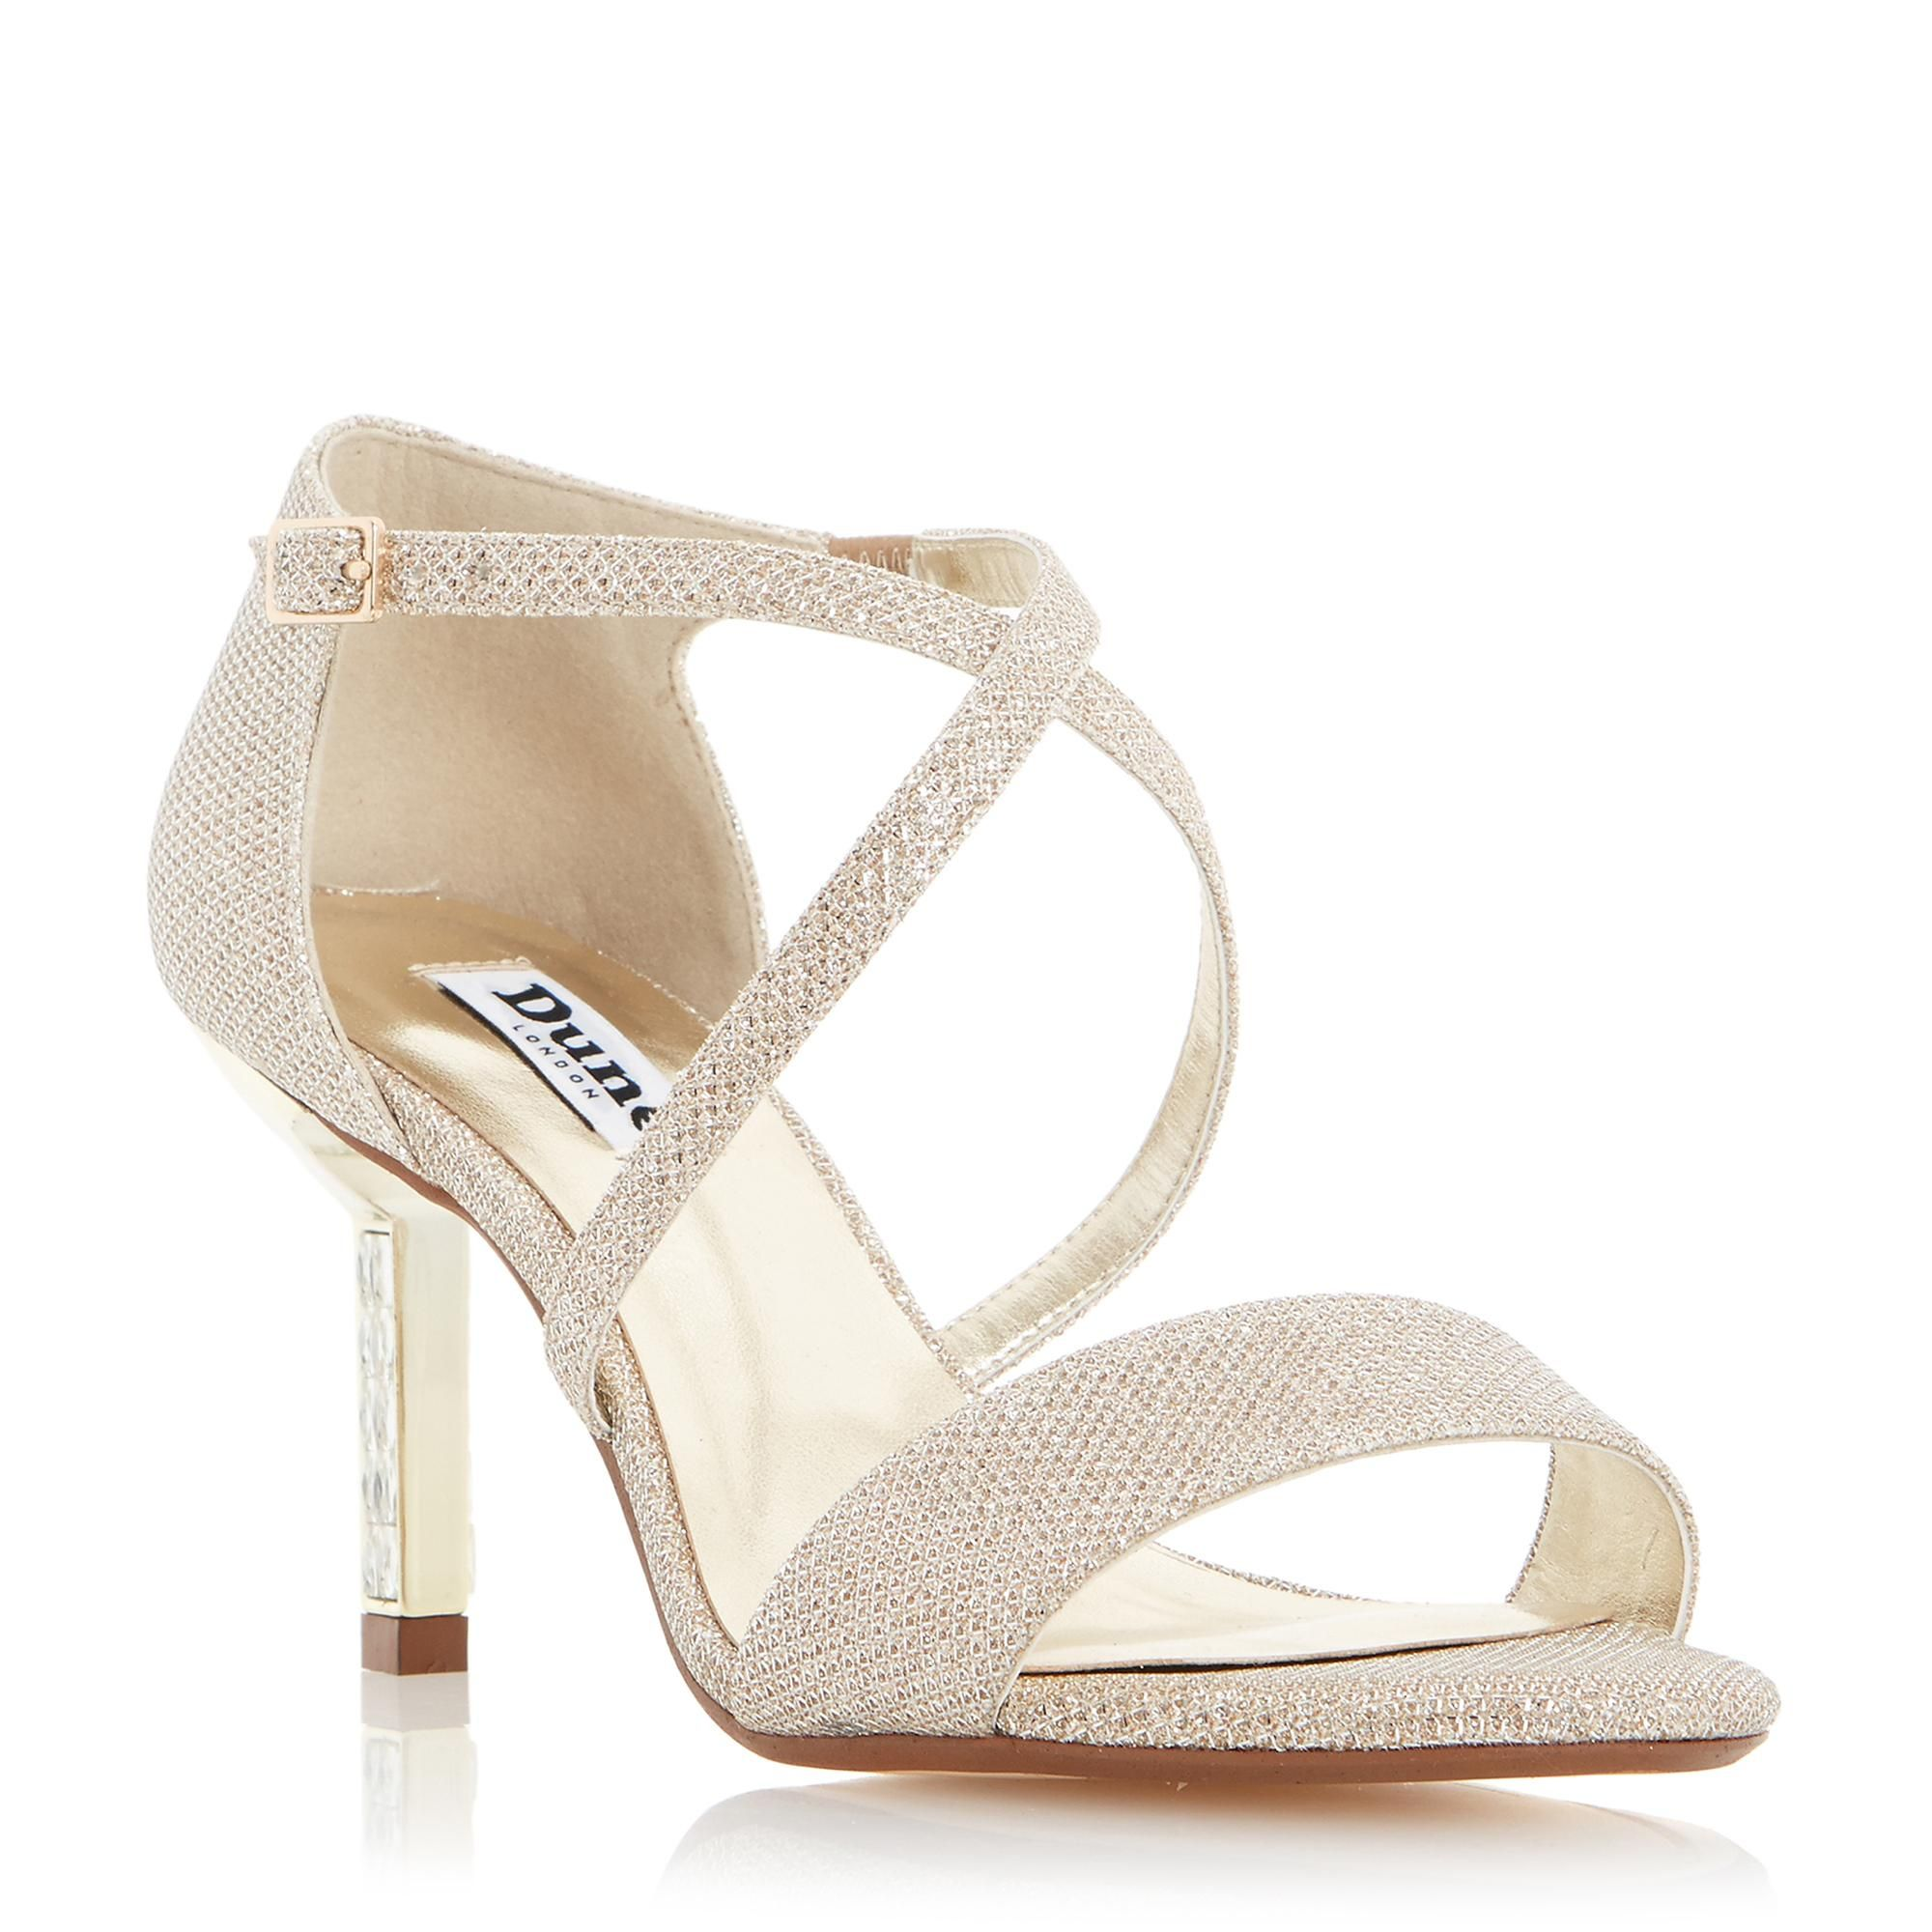 DUNE LADIES MINDEE  Diamante Mid Heel Cross Strap Sandal  gold  Dune  Shoes Online